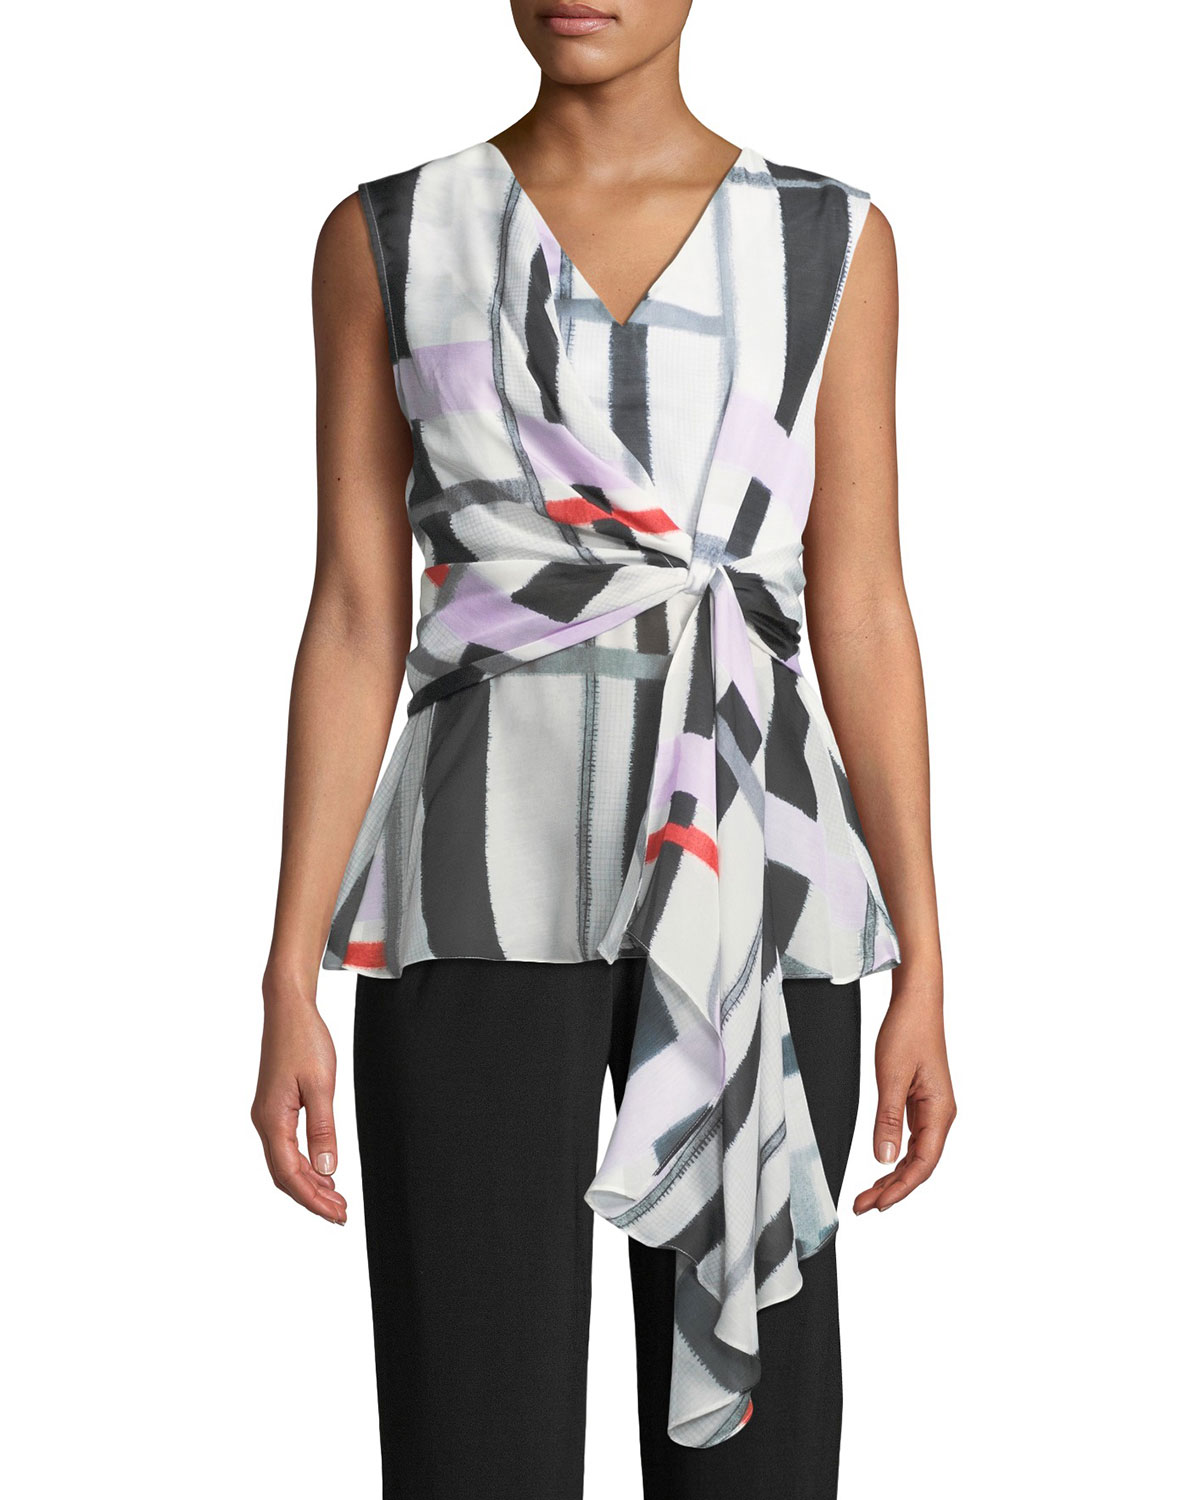 Josie Natori V-Neck Sleeveless Asymmetrical Knot Voile Top